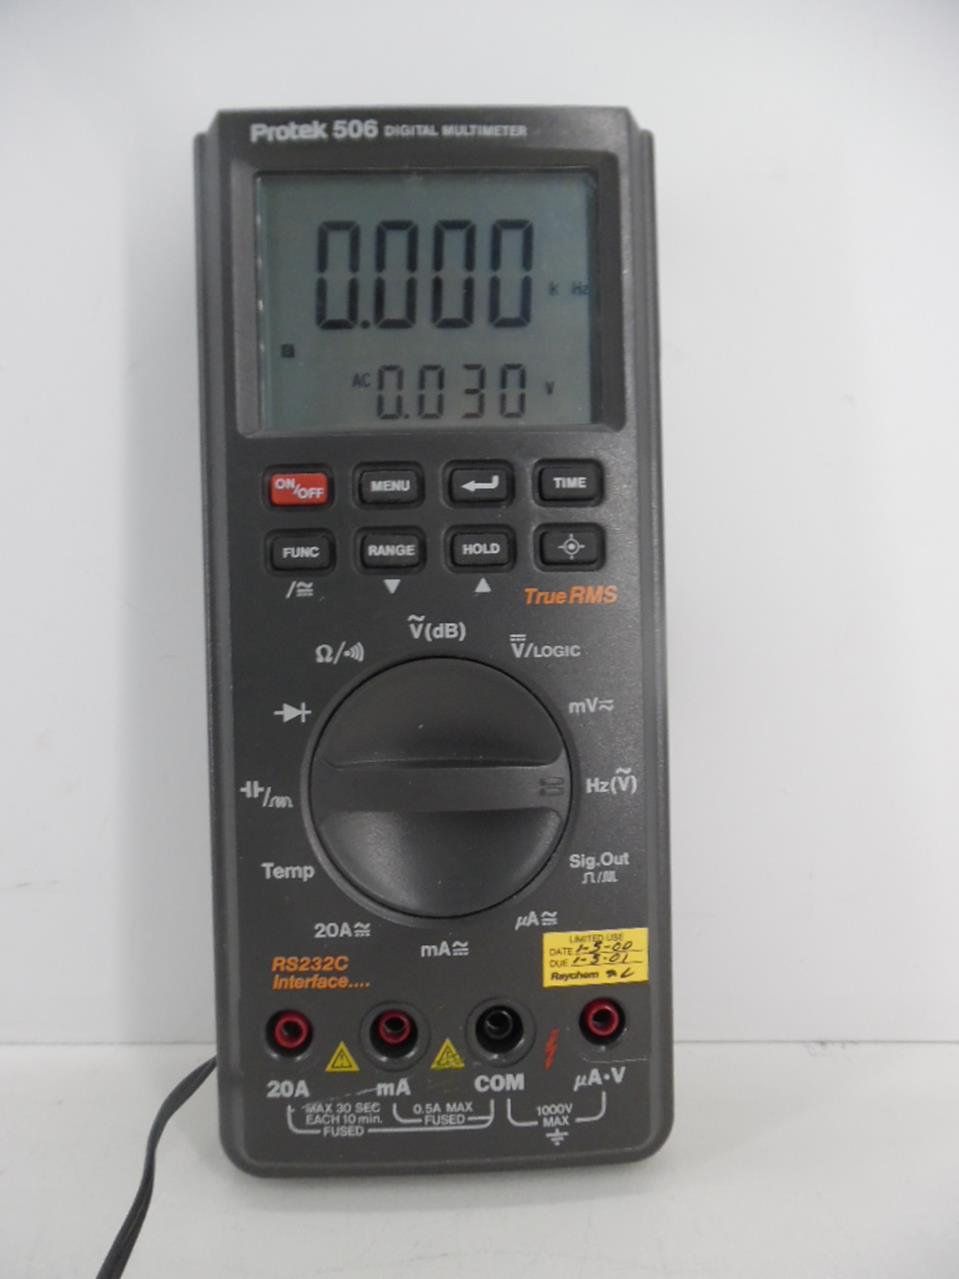 Schemi Elettrici Golf : Protek 506 digital multimeter true rms rs232c interface ebay